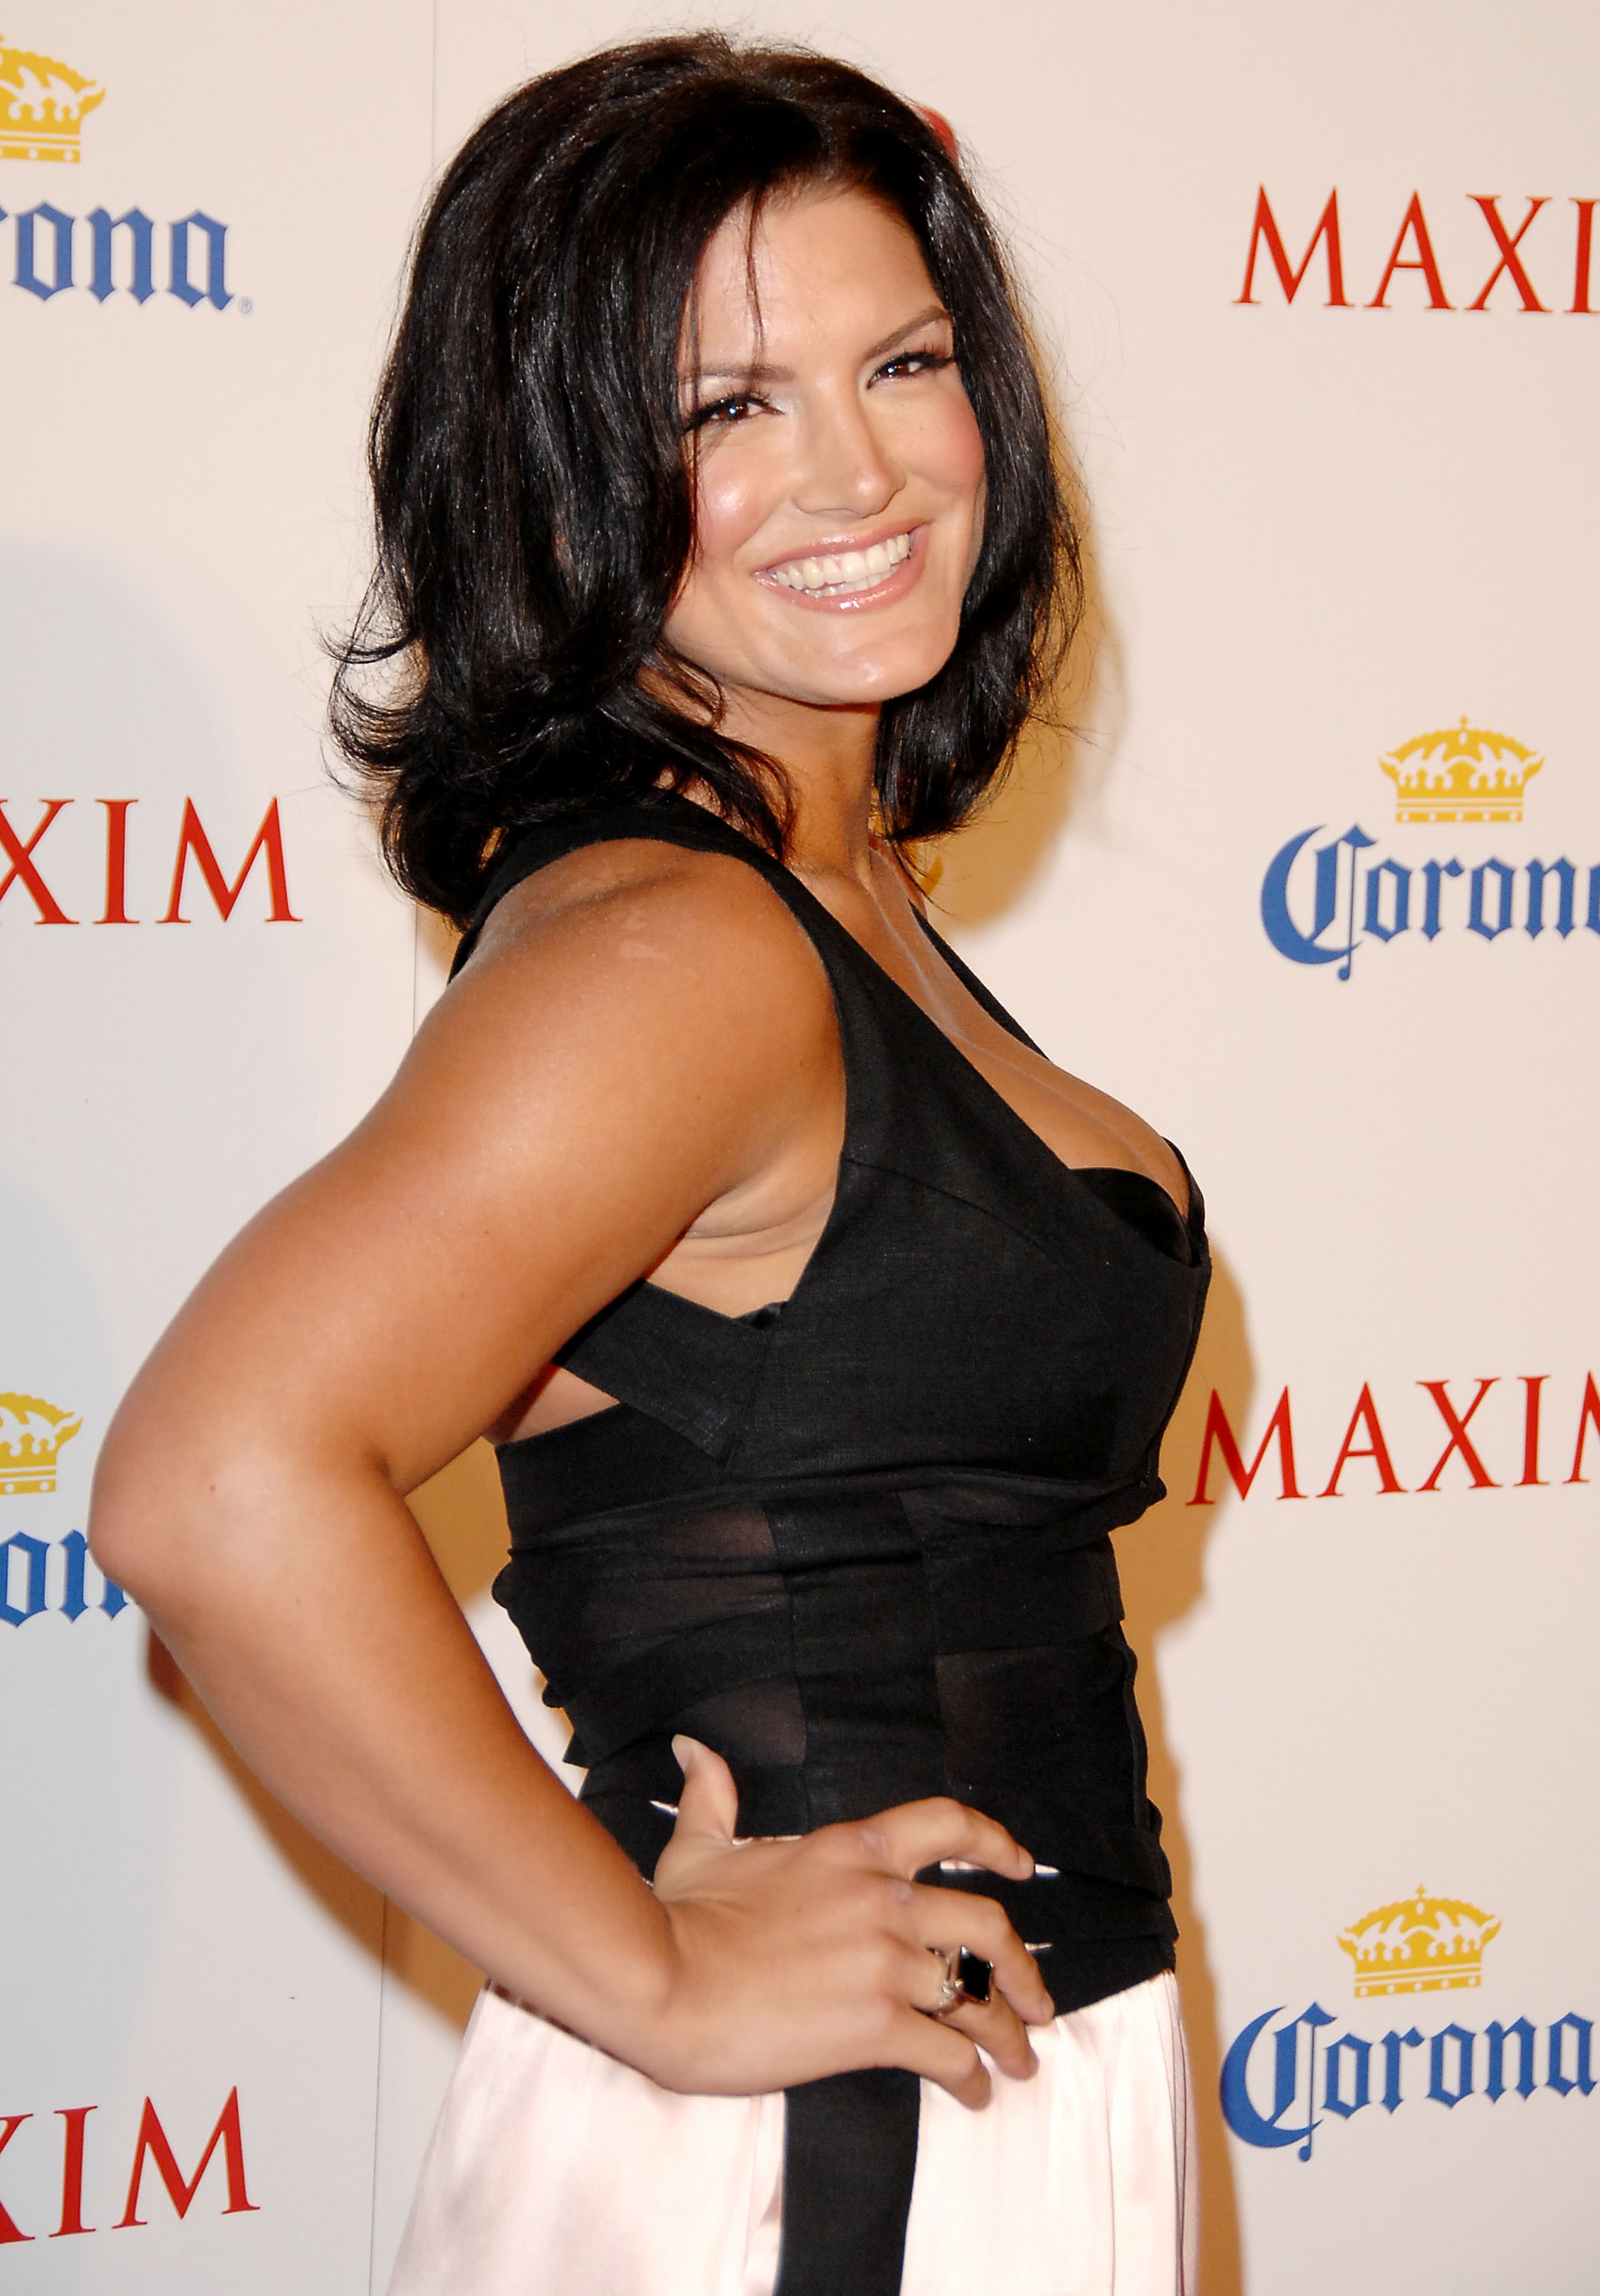 http://www.gina-carano.org/wp-content/uploads/2009/05/gina-carano-maxim-hot-100-party-.jpeg